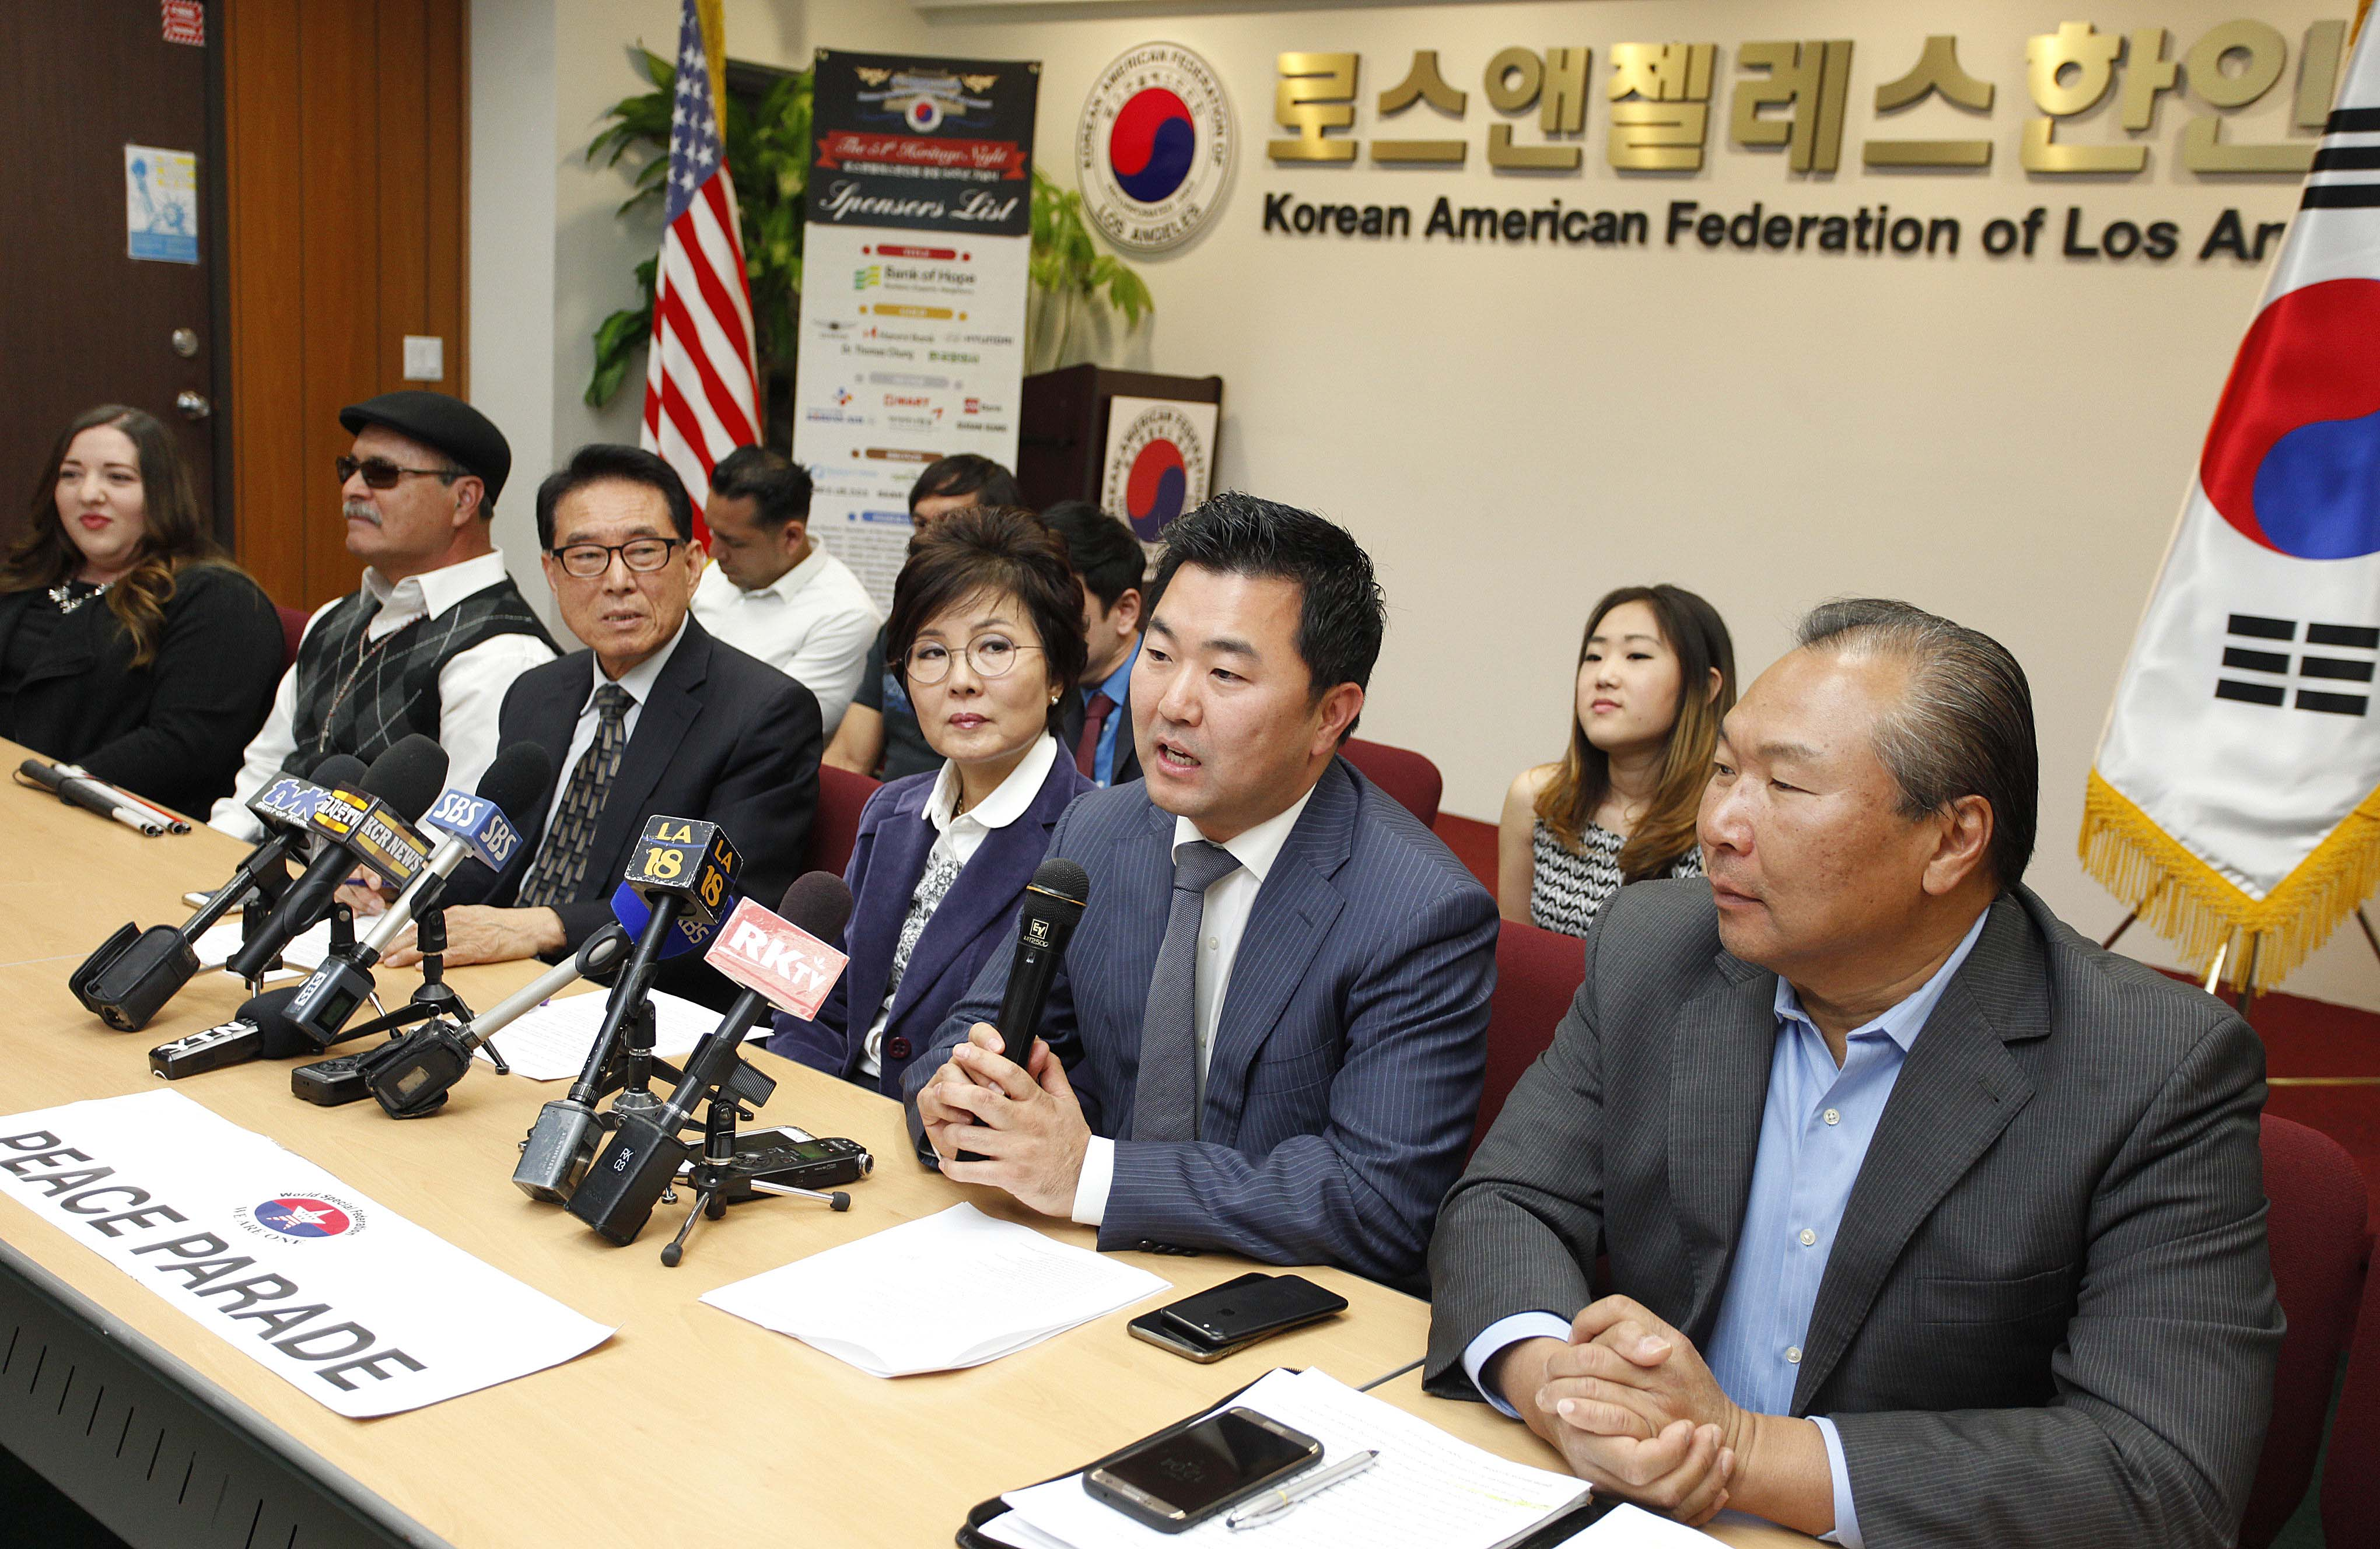 L.A. City Councilman David Ryu (second from right) and Korean American Federation of L.A. chairwoman Laura Jeon are announcing the plans for the event to commemorate the 25th anniversary of the L.A. riots. By Sang Jin Kim